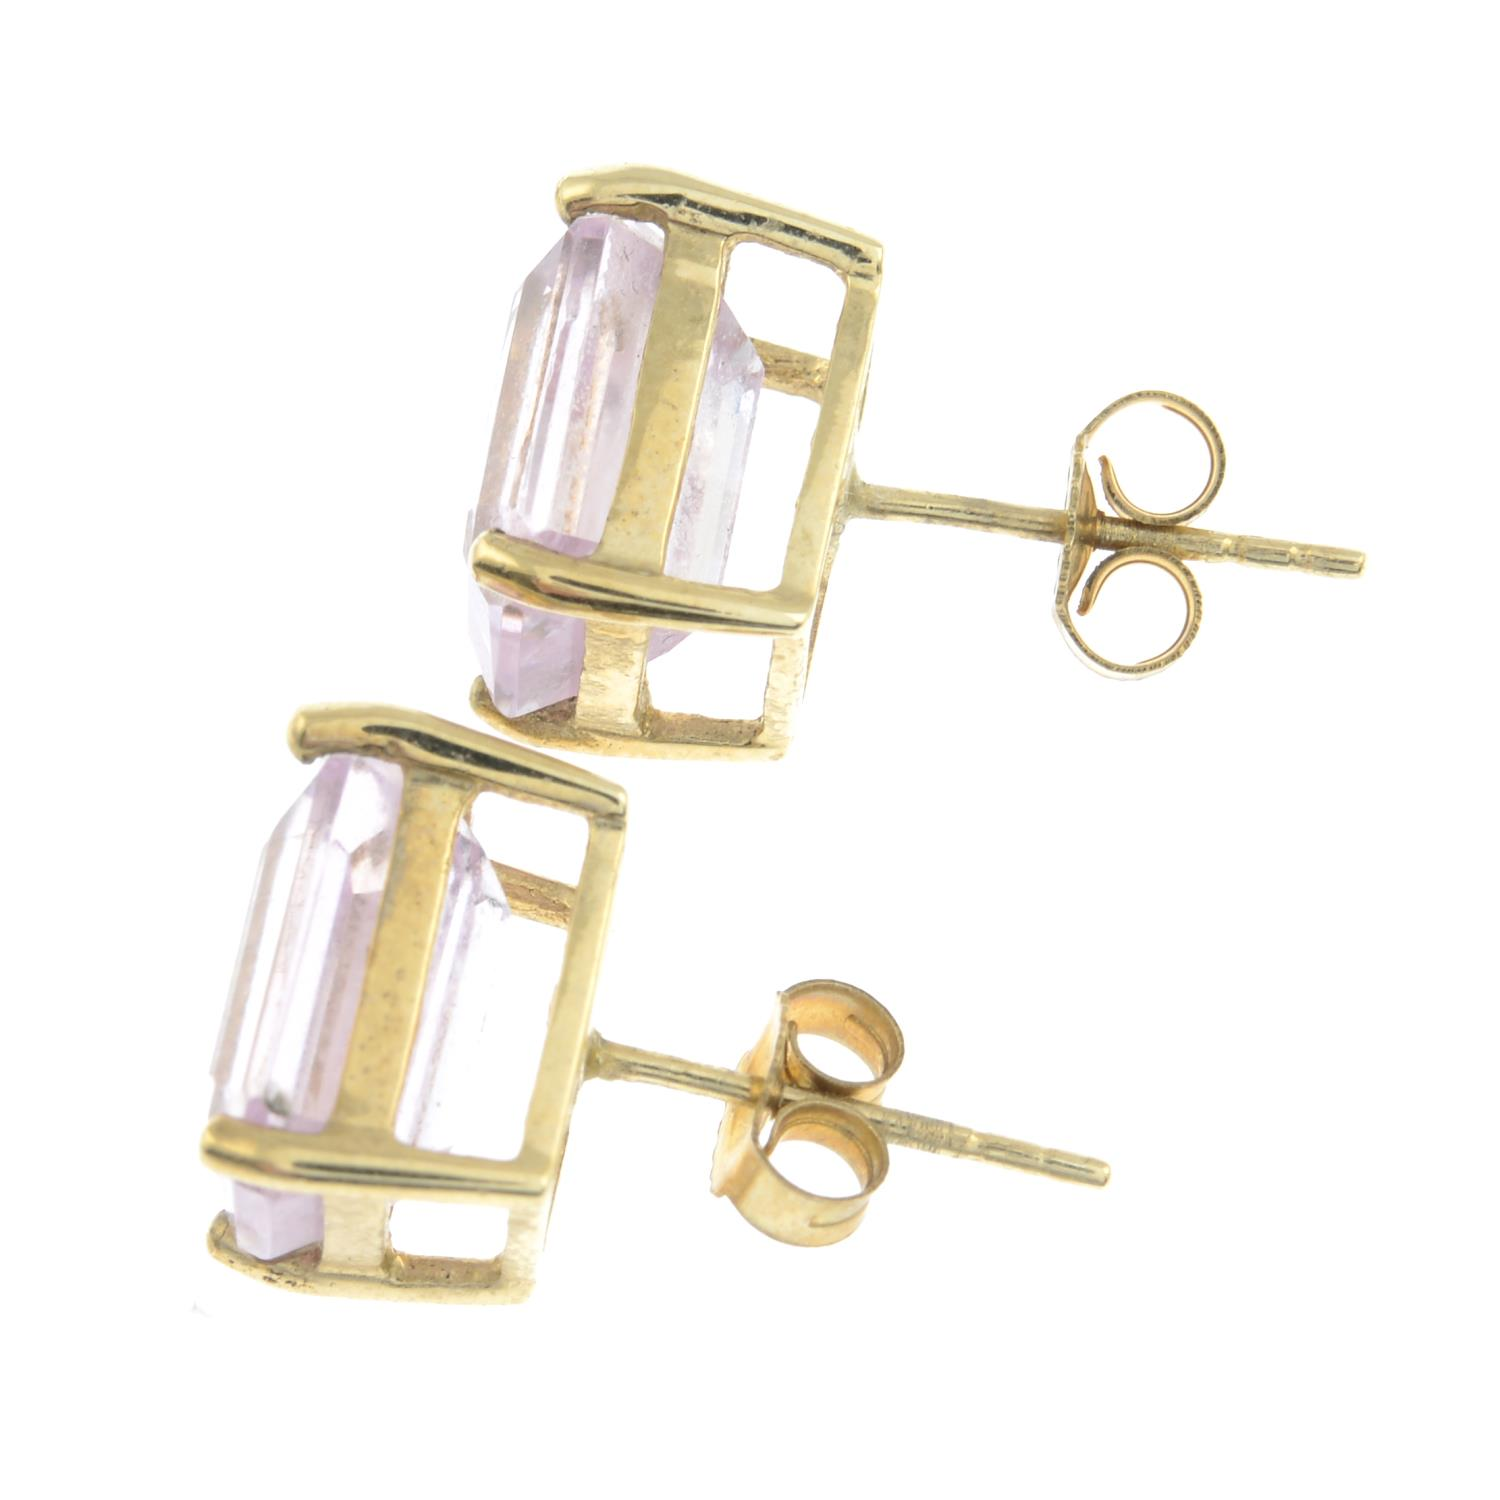 A pair of 9ct gold morganite stud earrings.Hallmarks for Birmingham.Length 1cms. - Image 2 of 2